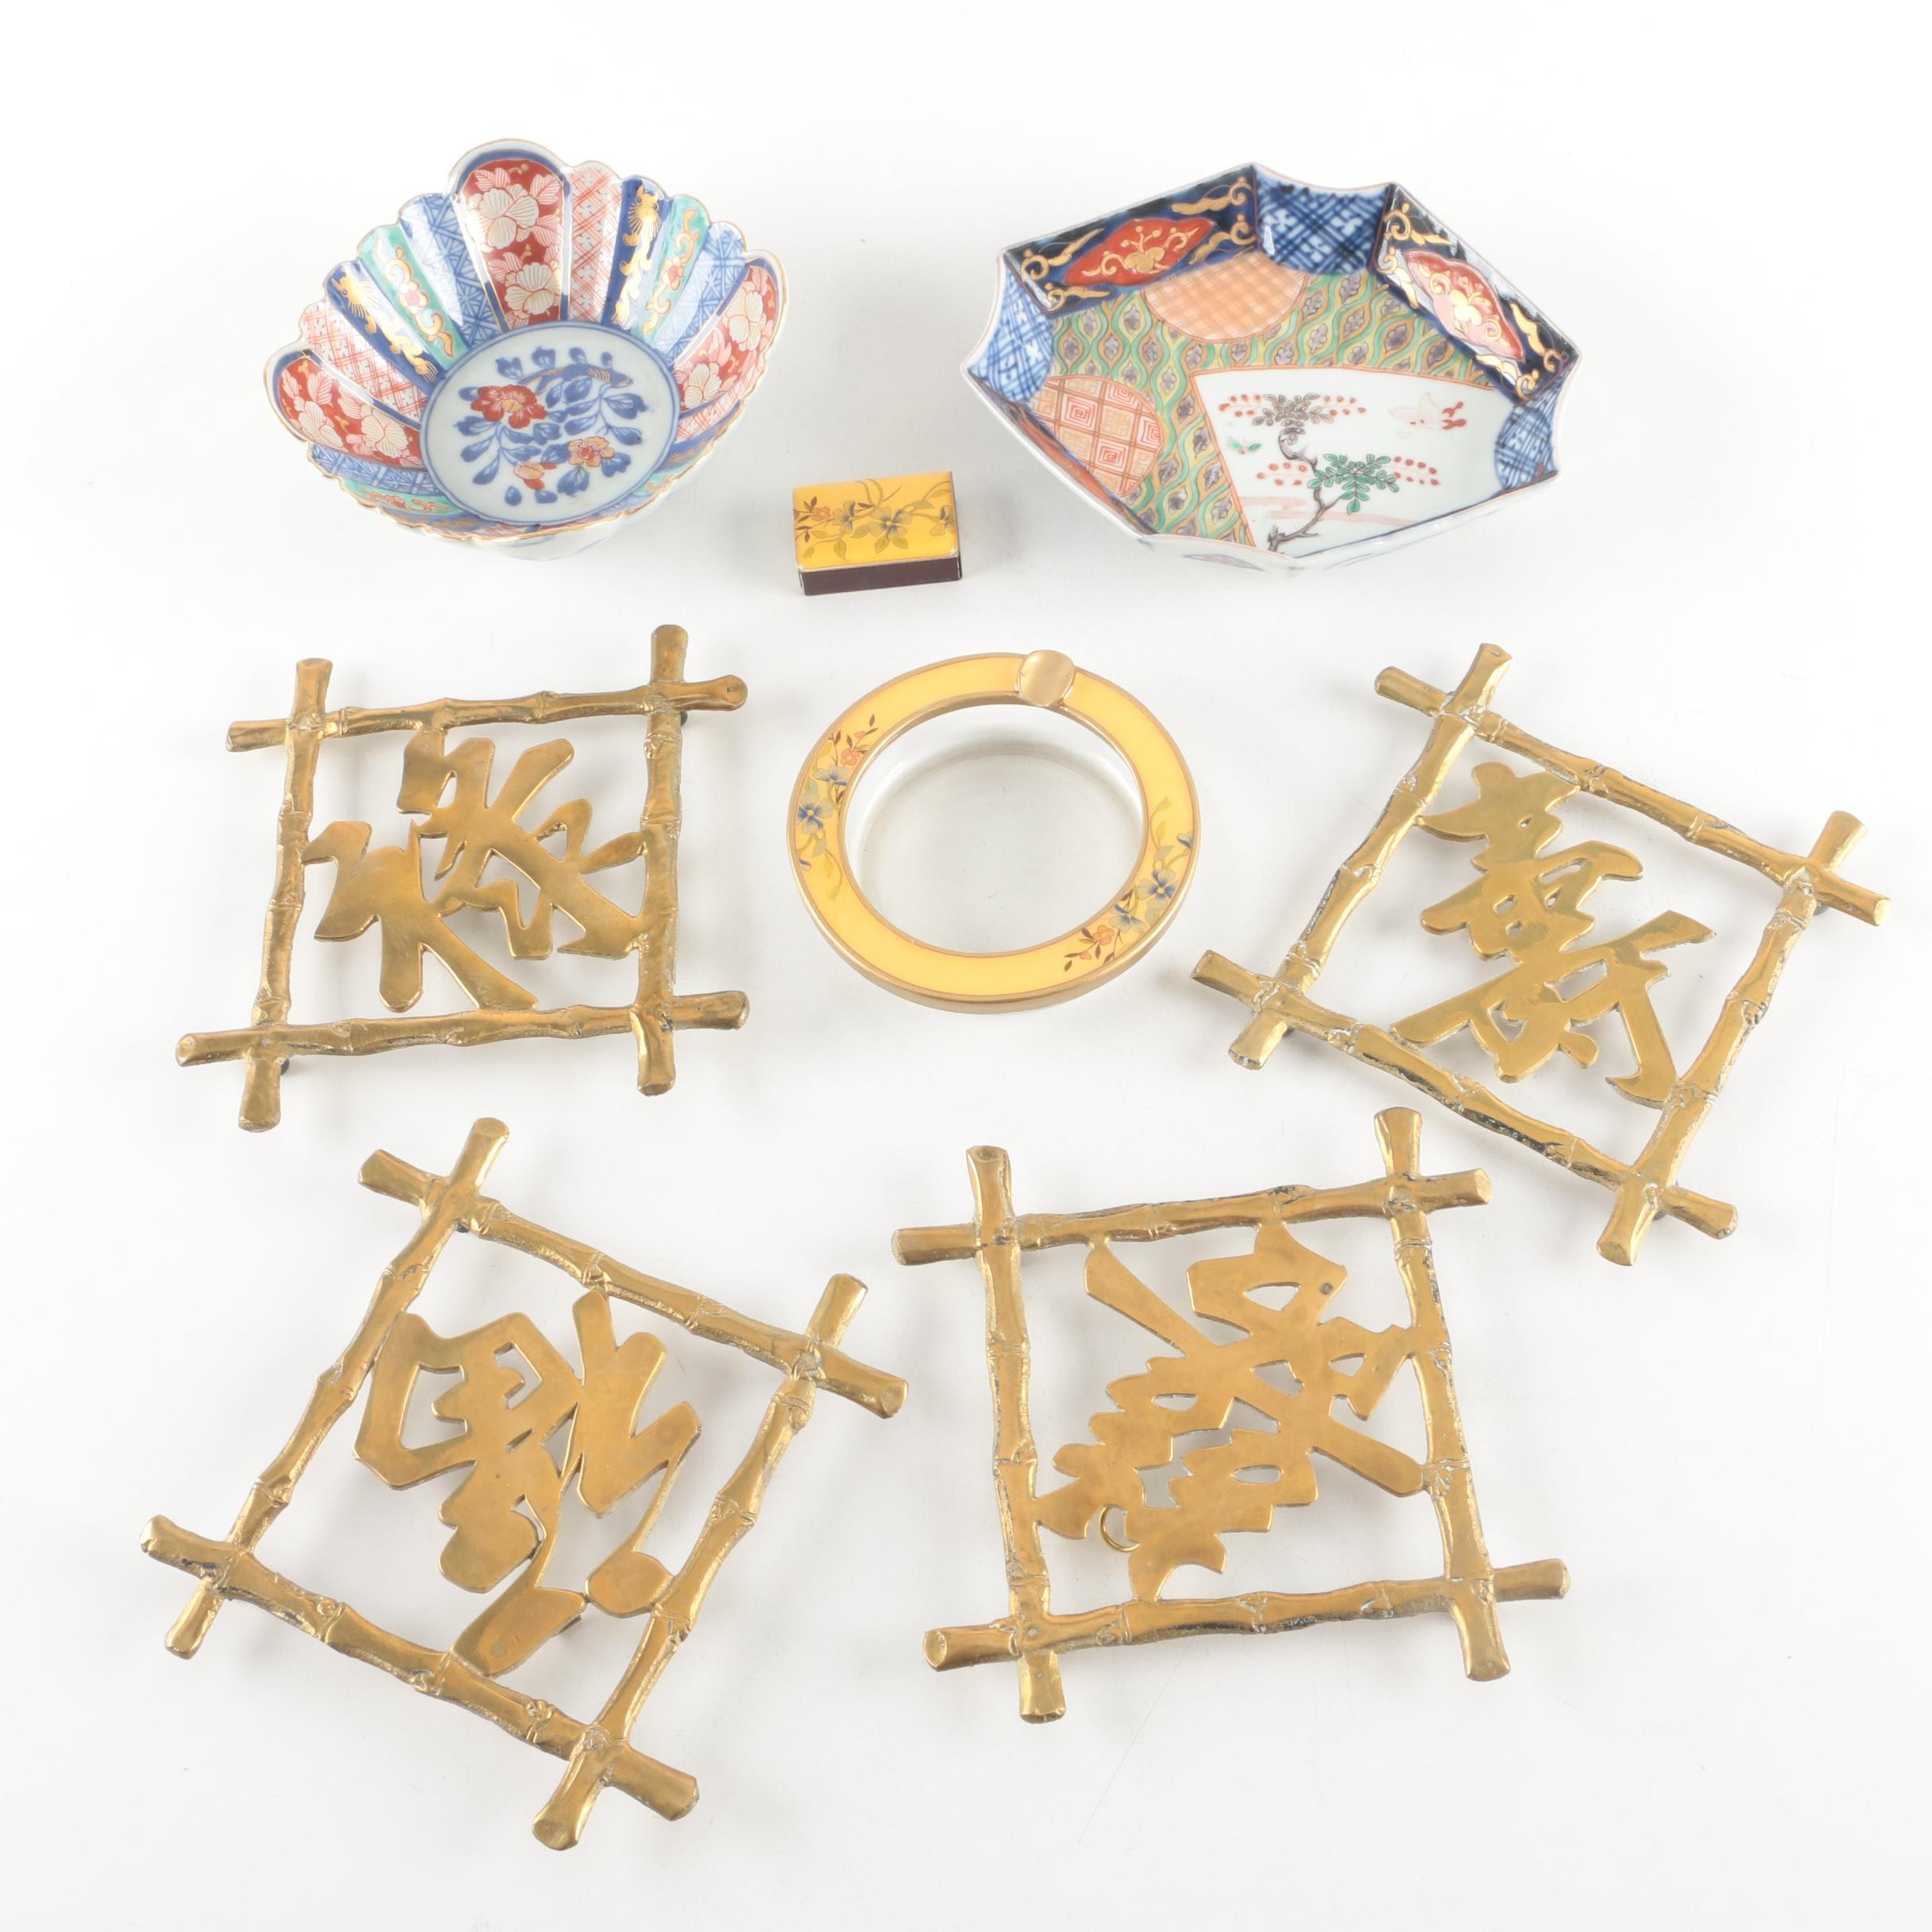 Japanese Imari Dishes and Brass Trivets with Auspicious Characters